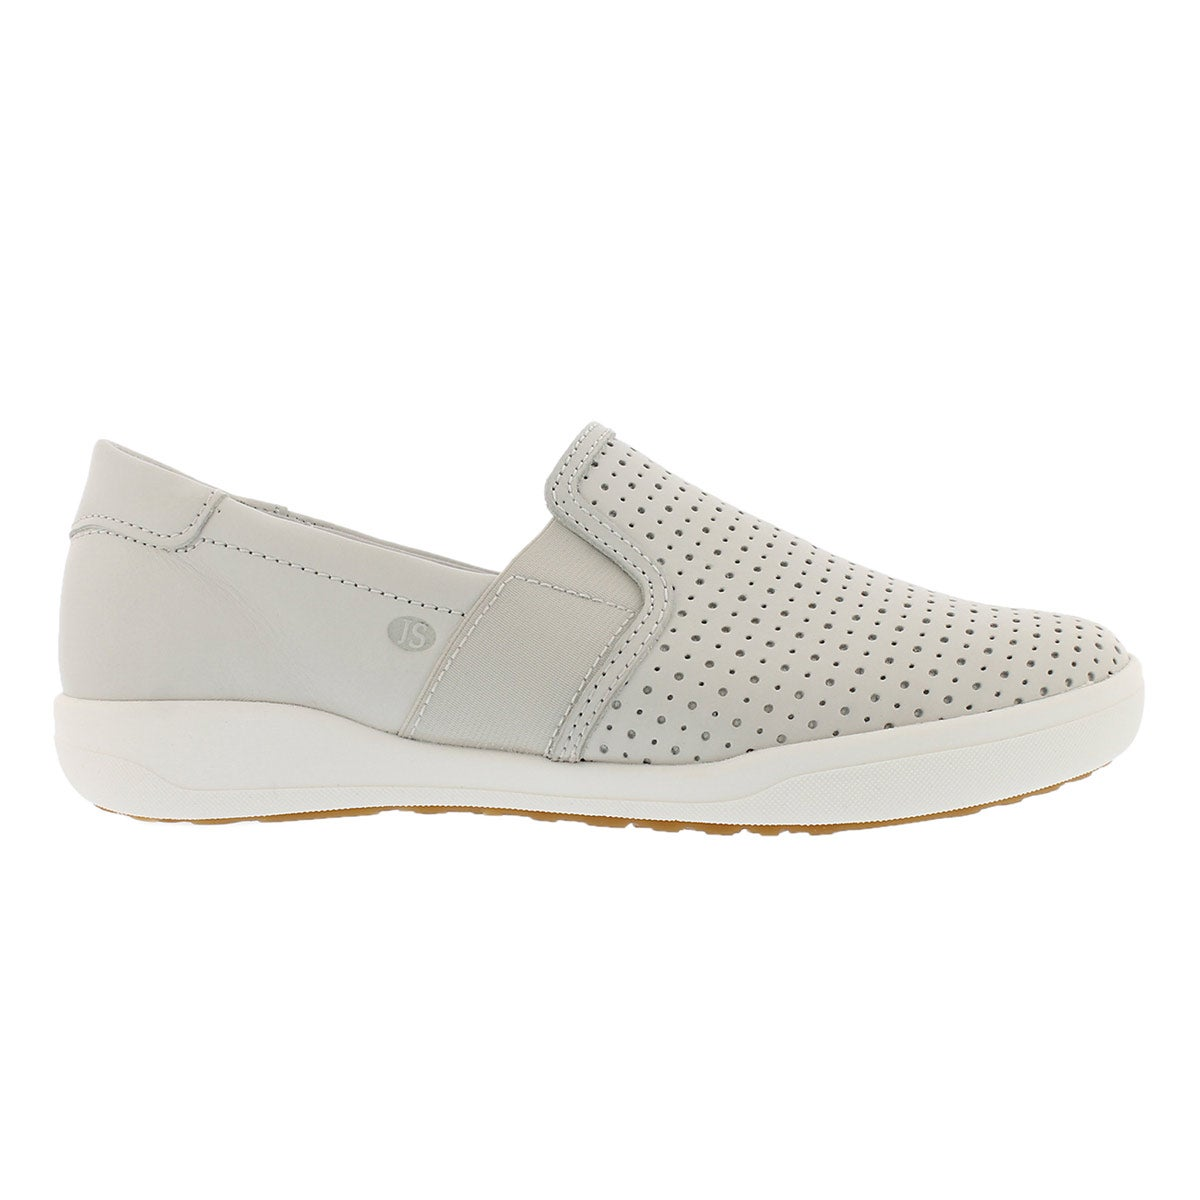 Lds Sina 15 white casual slip on shoe